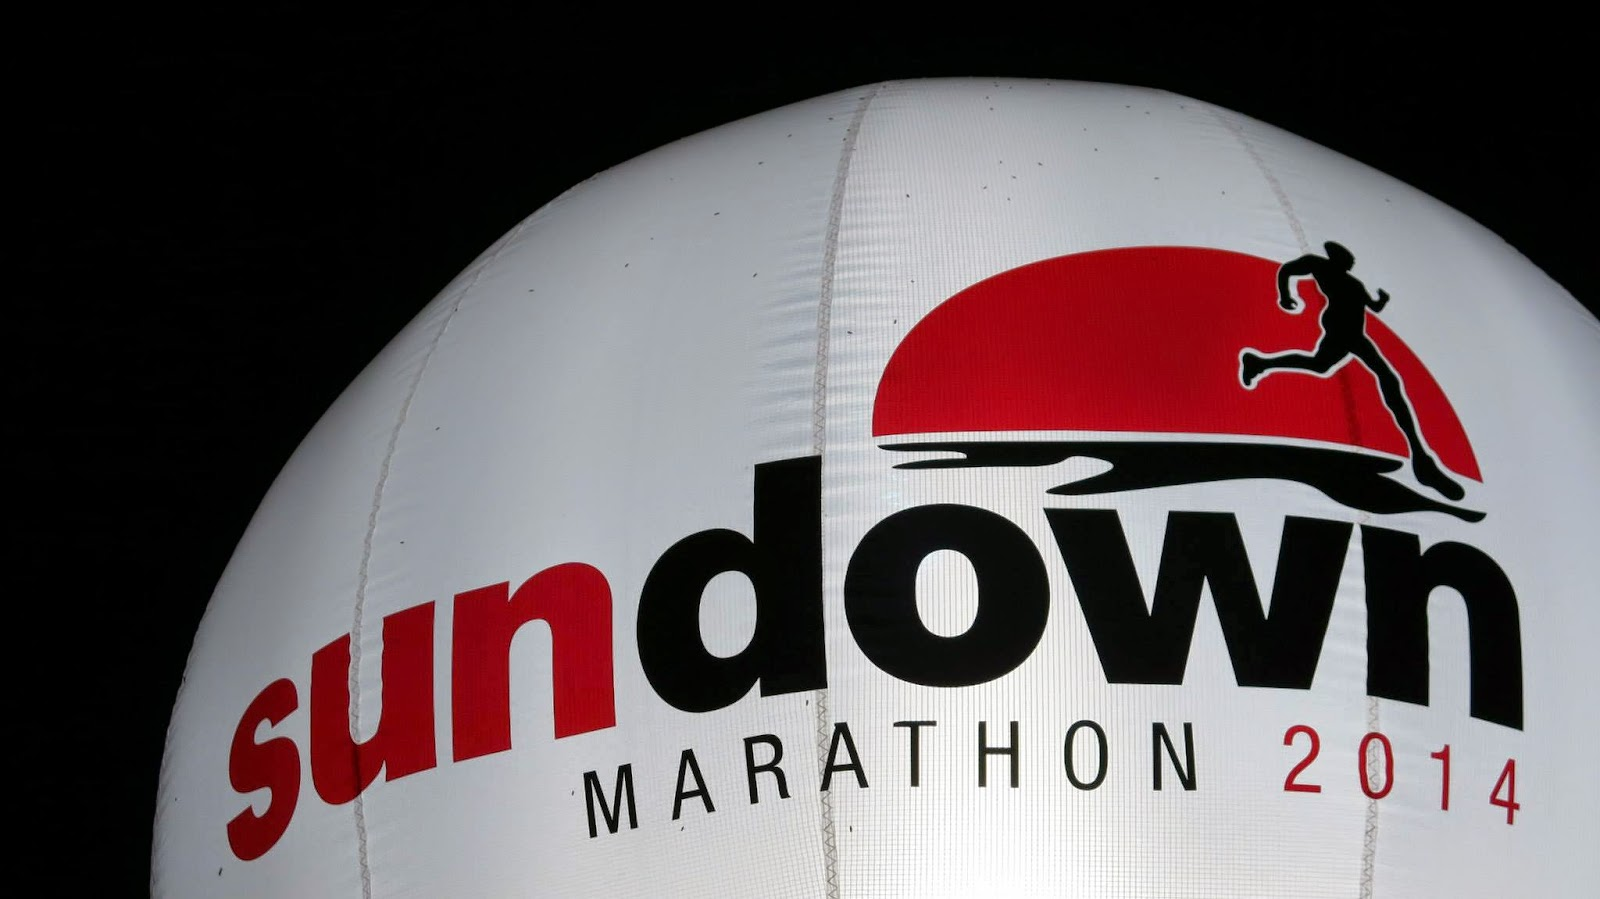 Sundown Marathon  2014 – Sundown Runners Rocked The Night!